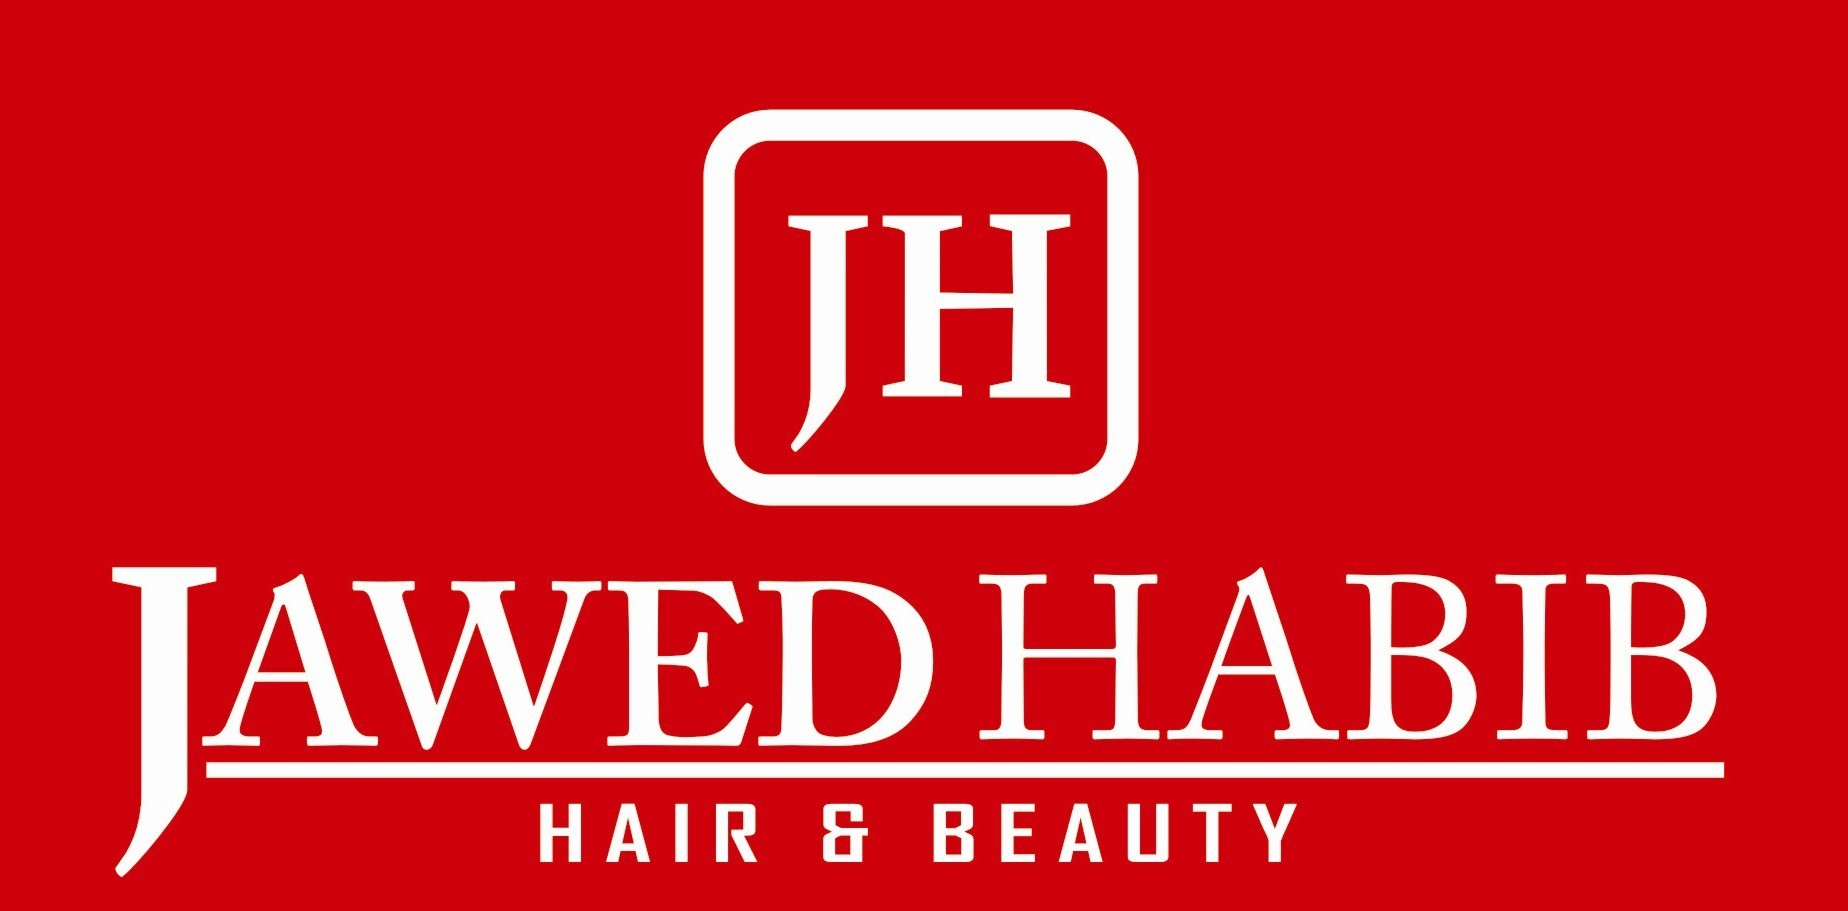 Jawed Habib Hair & Beauty Salons - Palasia Square - Indore Image